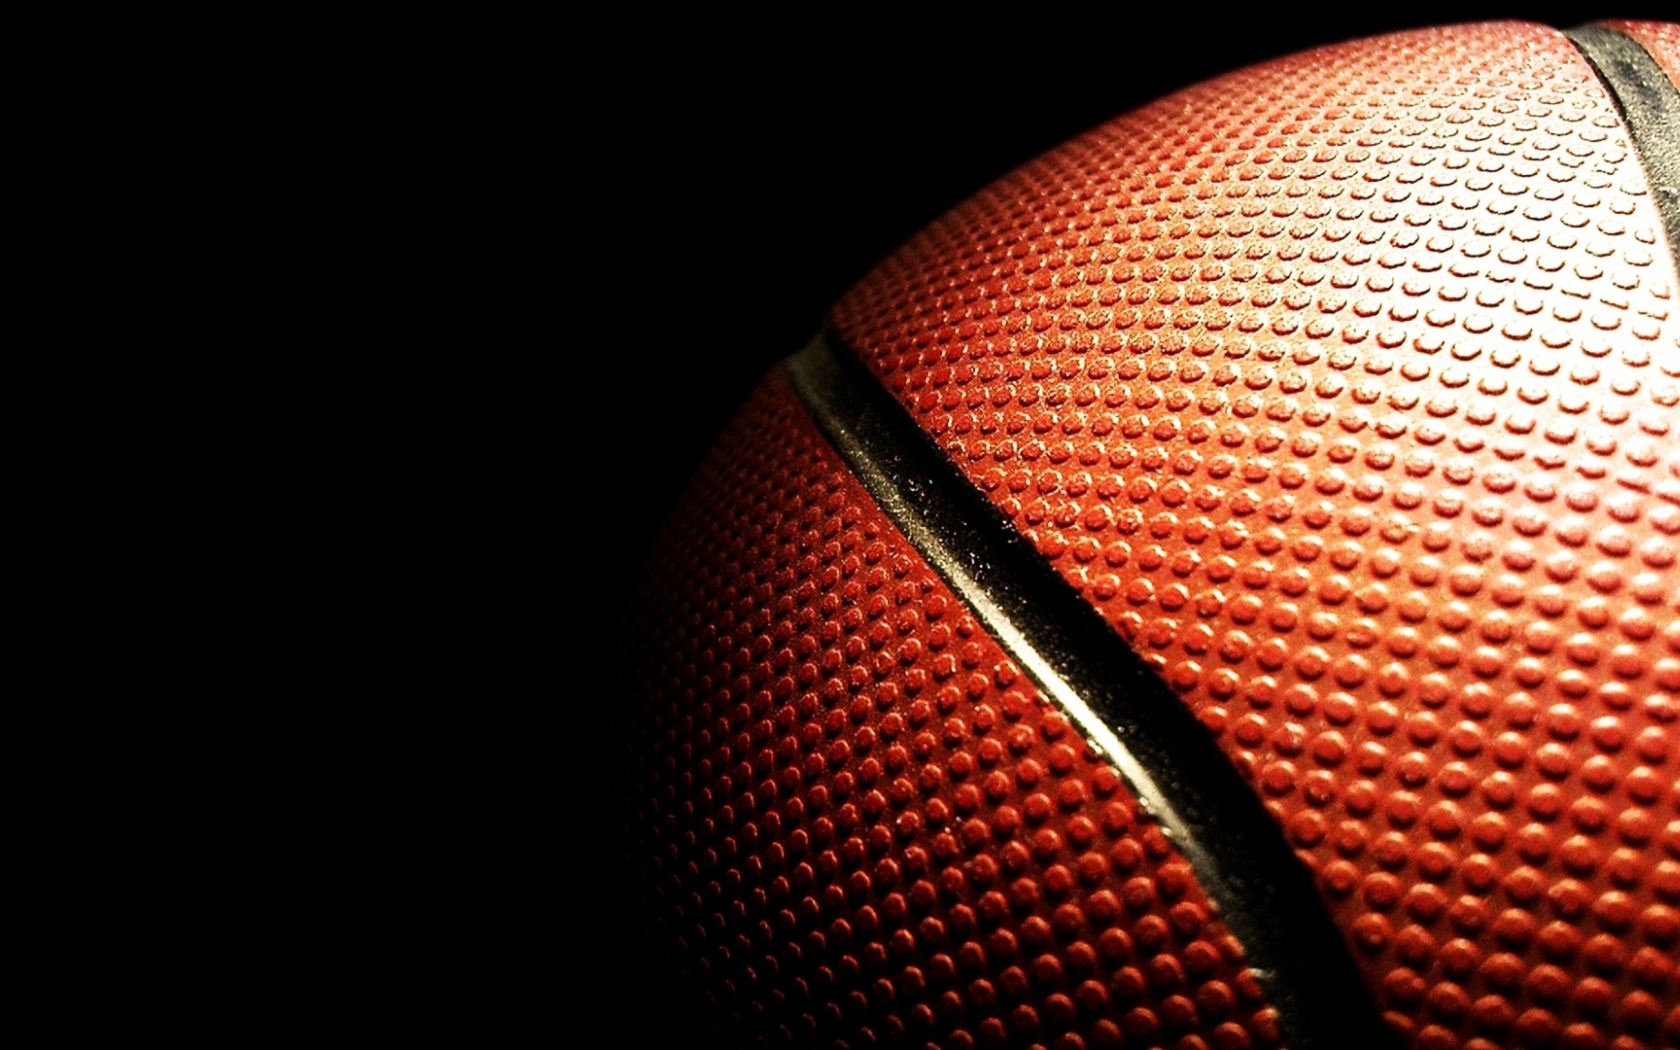 Free Download Basketball High Definition Wallpapers Hd Wallpapers Images, Photos, Reviews